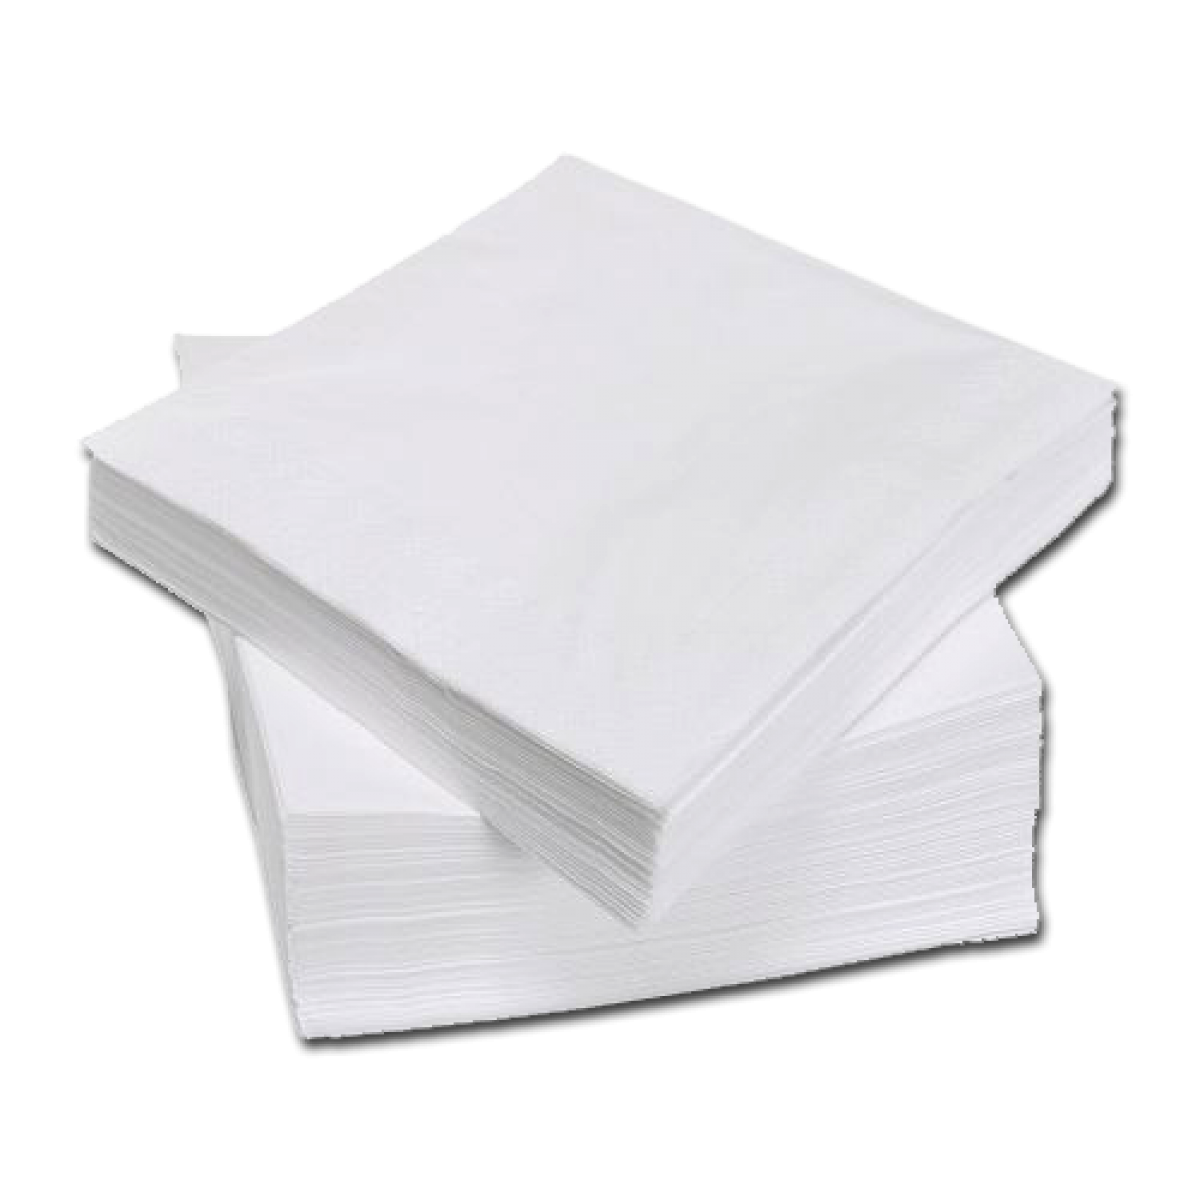 Napkin clipart tissue paper. Png images free download